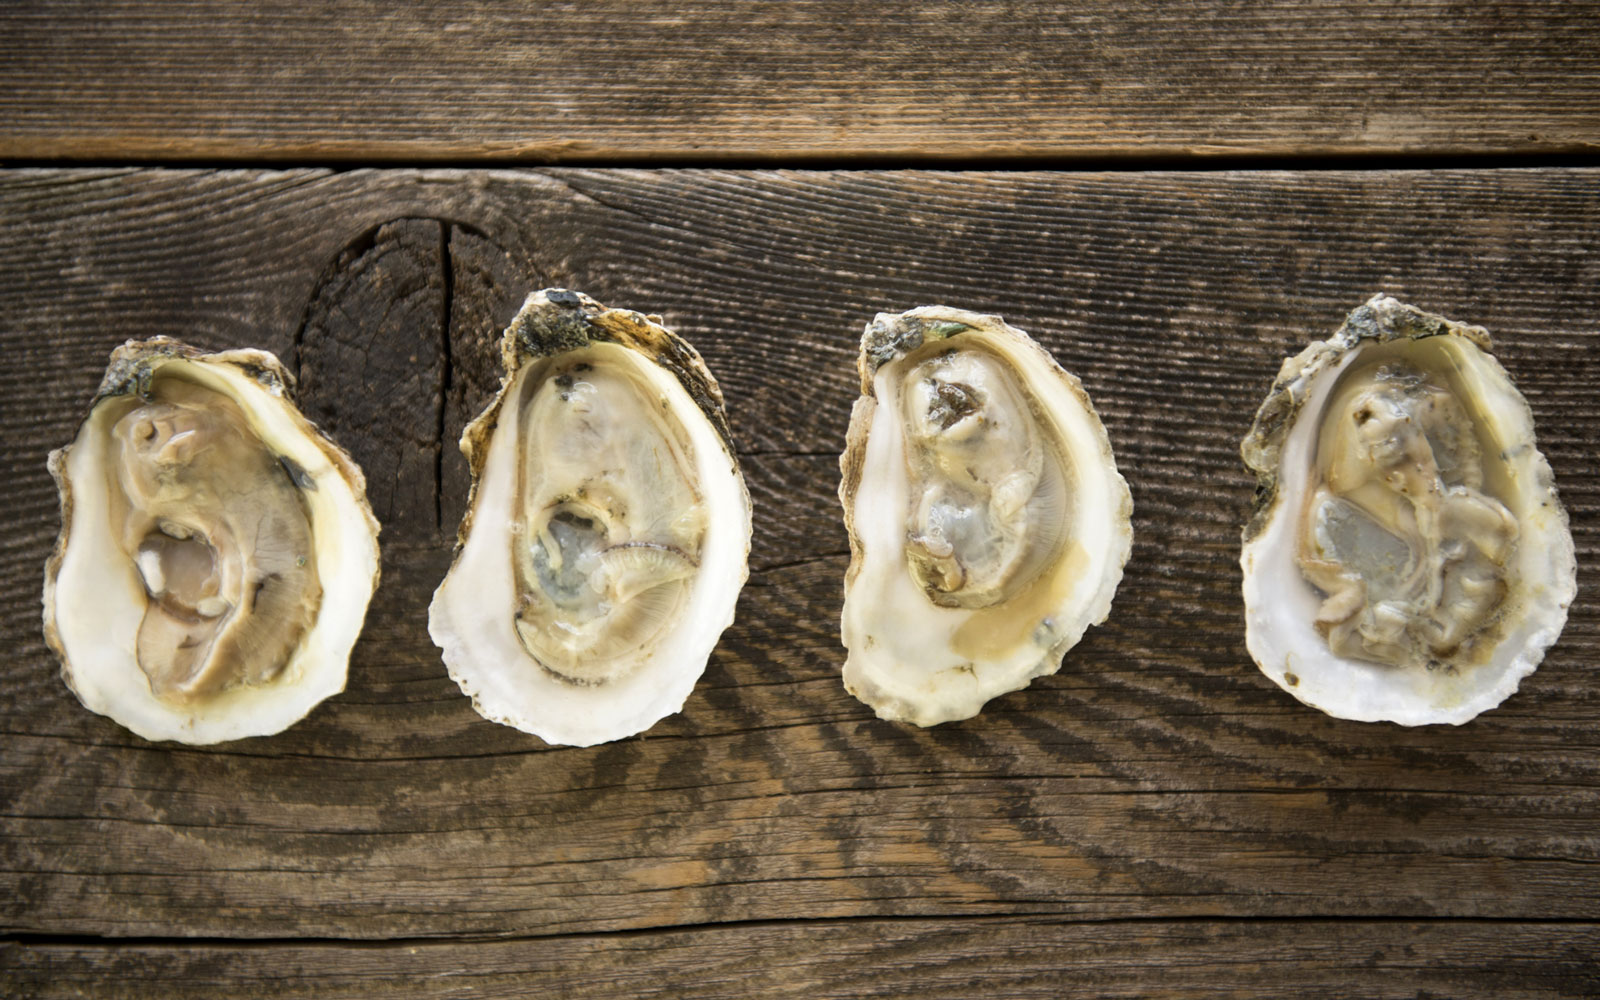 Best Oyster Bars in America: Gilhooley's Raw Bar, San Leon, TX